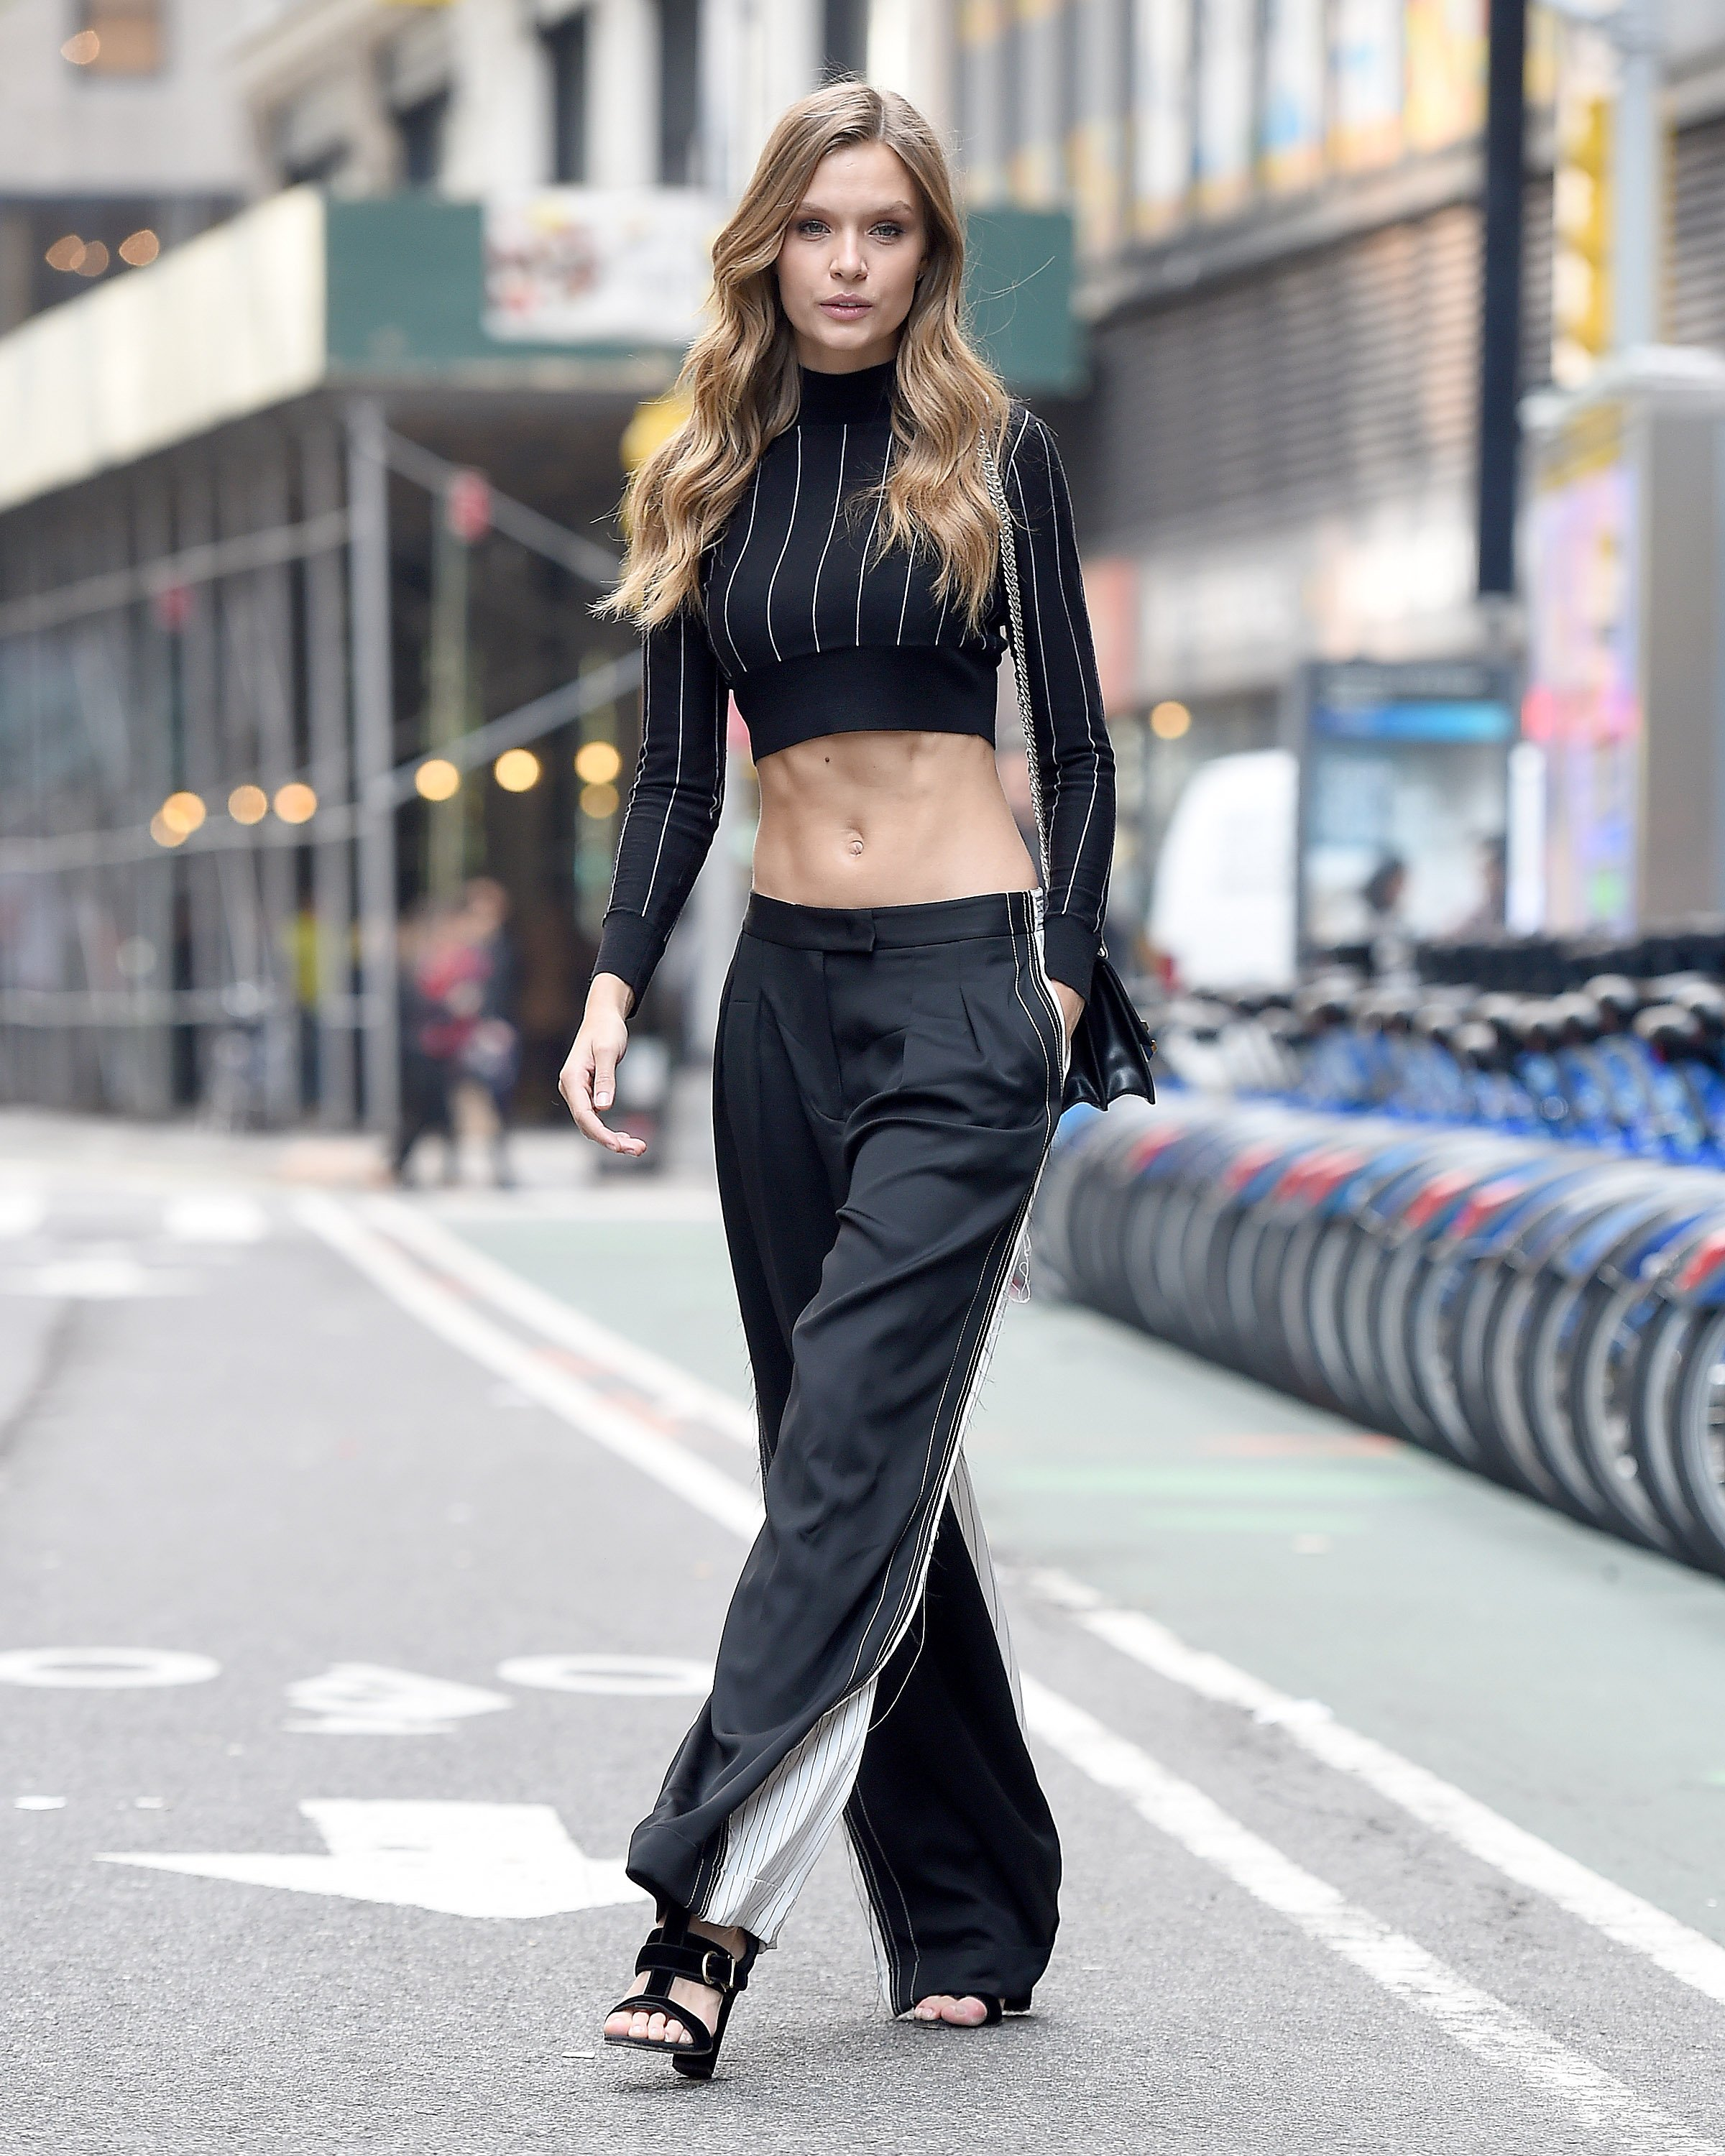 Skriver showed up to VS fittings in this. (Photo credit: Splash News)